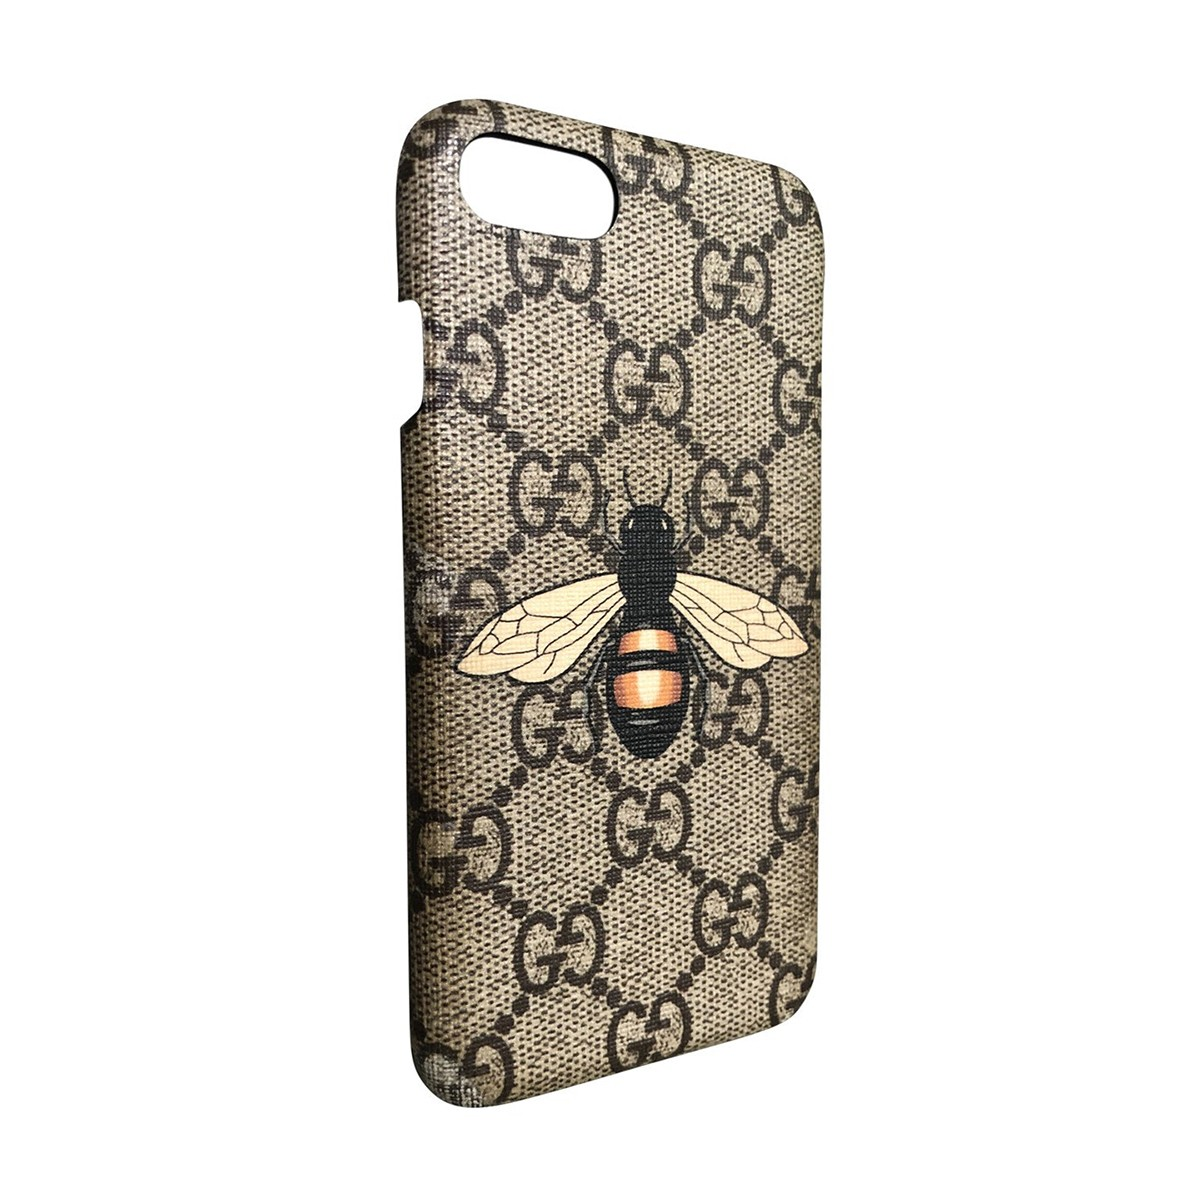 buy popular 3189c 3c72d GUCCI IPHONE CASE